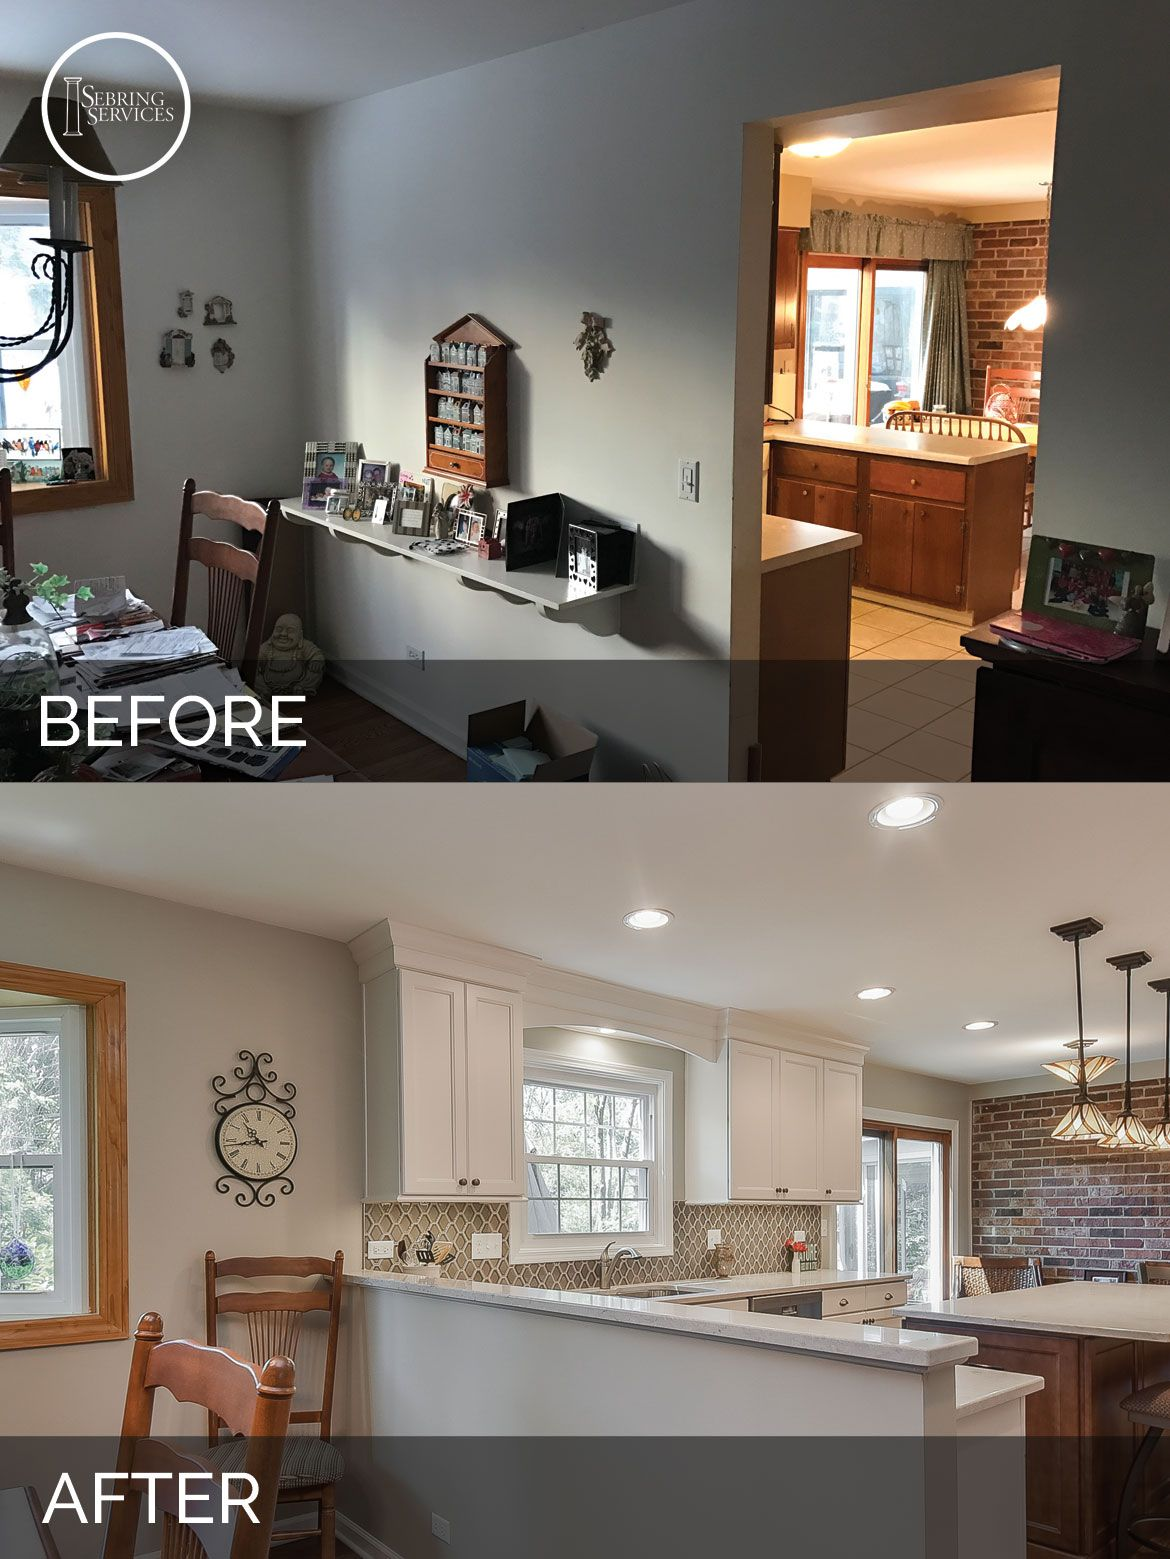 Scott & Ann's Kitchen Before & After Pictures  Kitchens Diy Mesmerizing Bathroom Remodeling Naperville Design Ideas